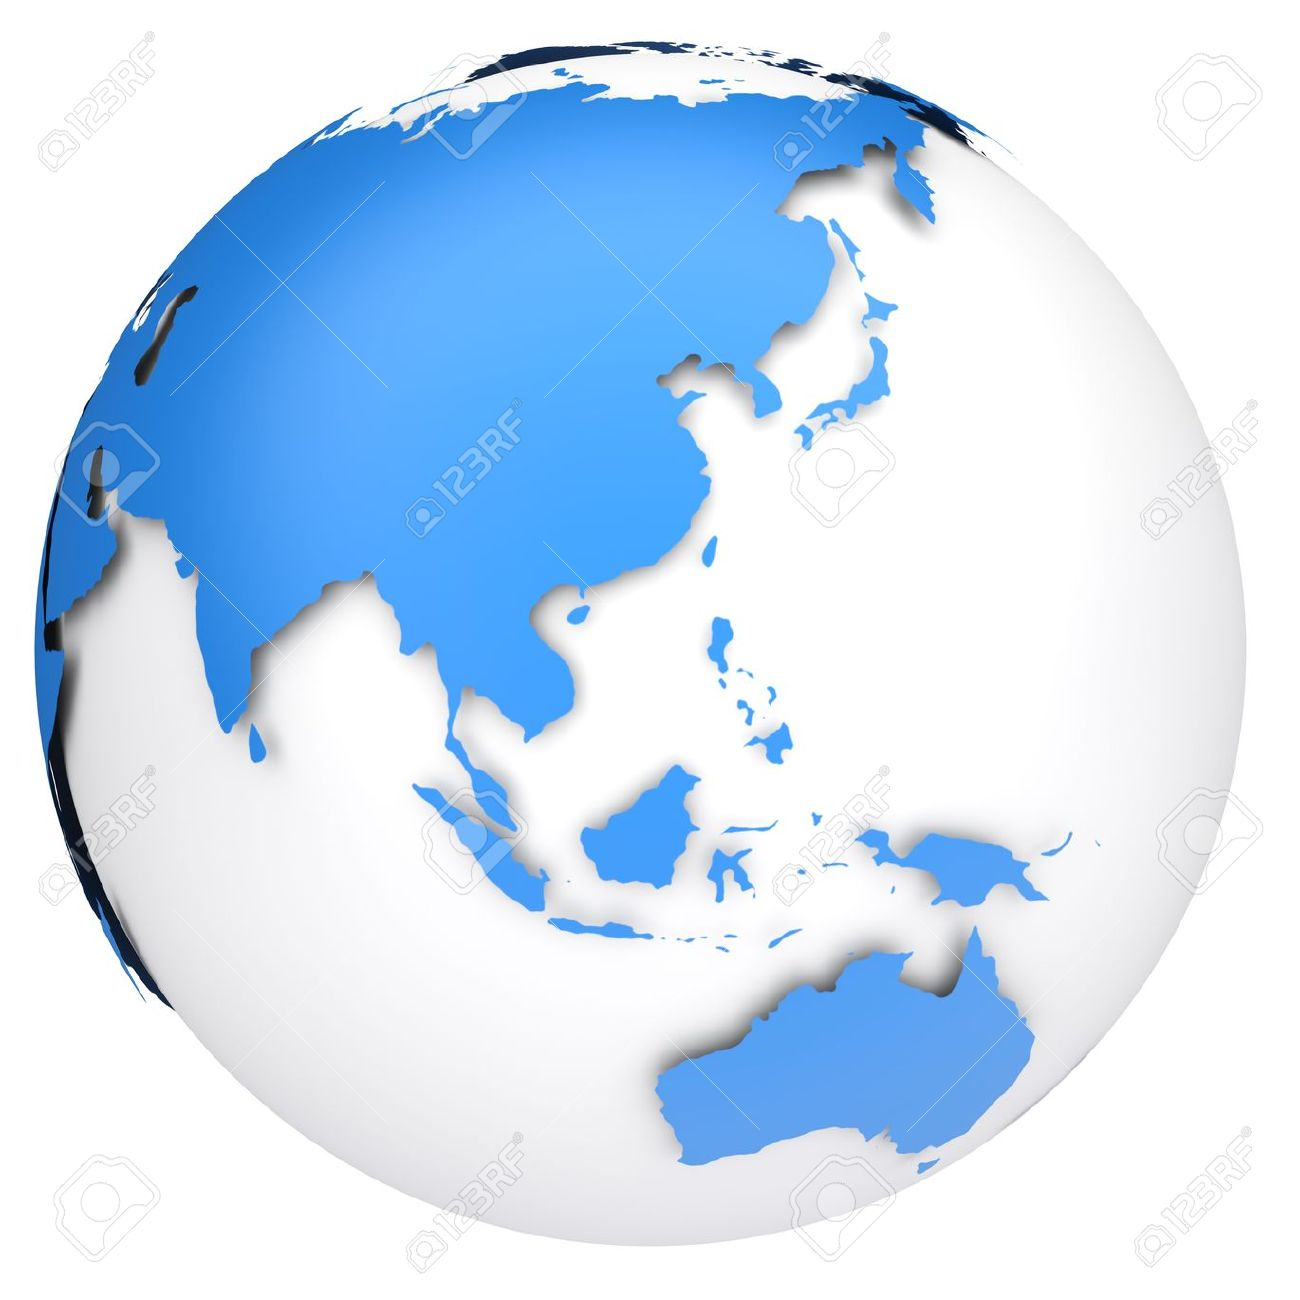 Maps update globe map. Asia pacific clipart